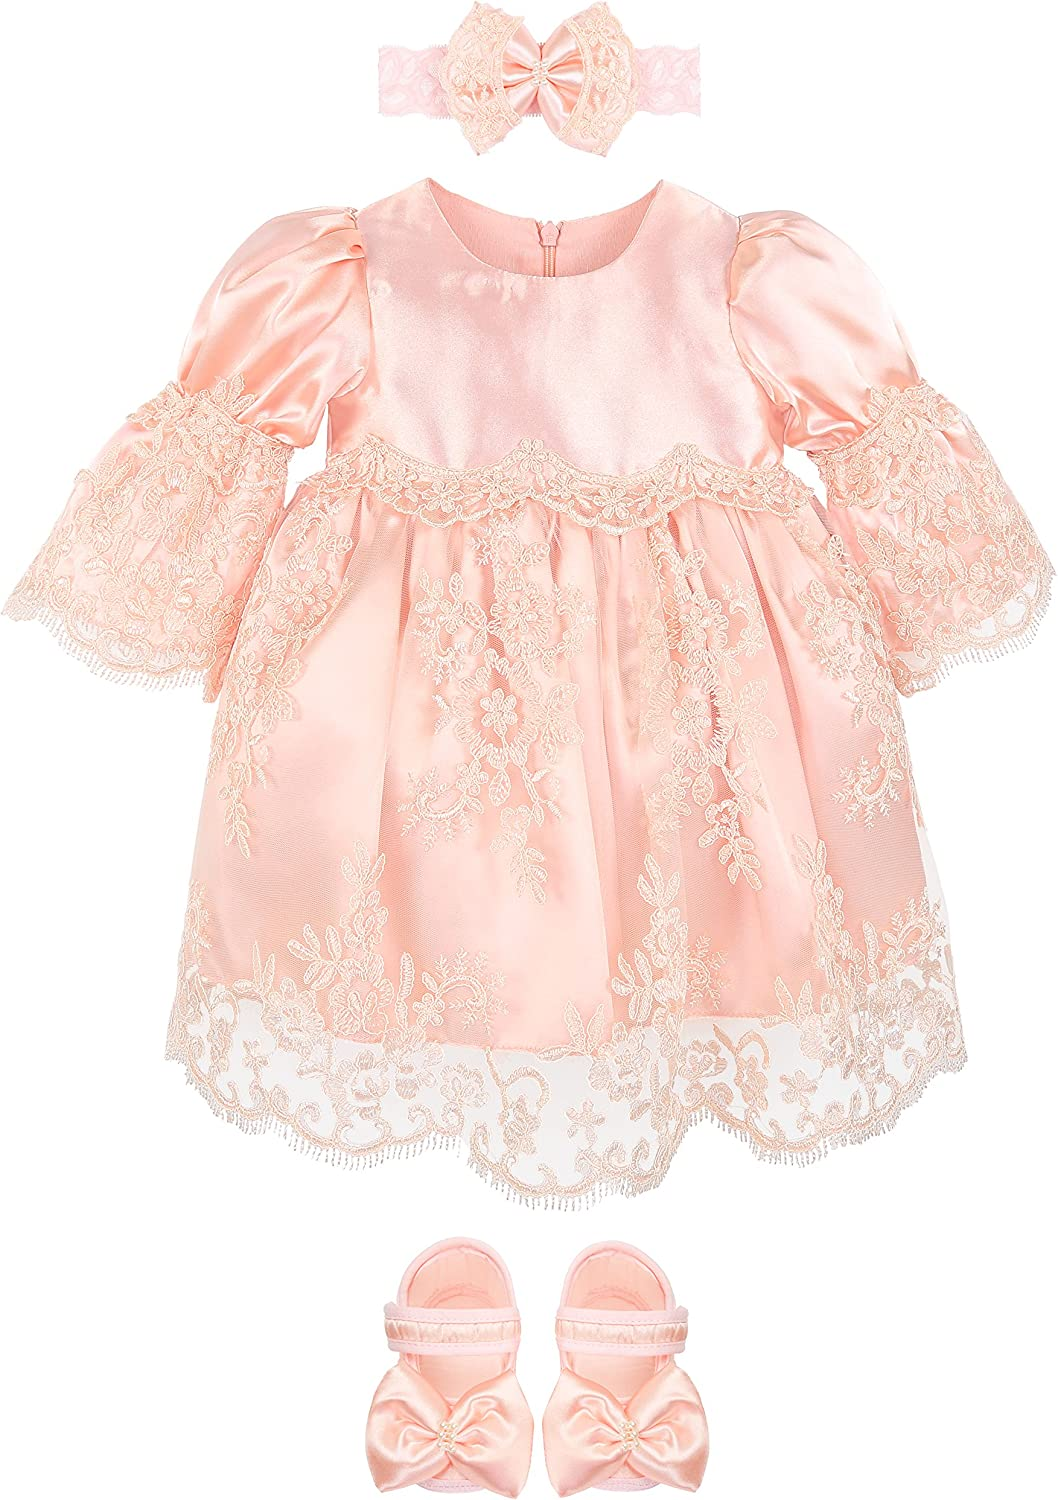 Lilax Baby Girl Newborn Peach 3/4 Sleeve Lace Princess Dress Gown 4 Piece Deluxe Set